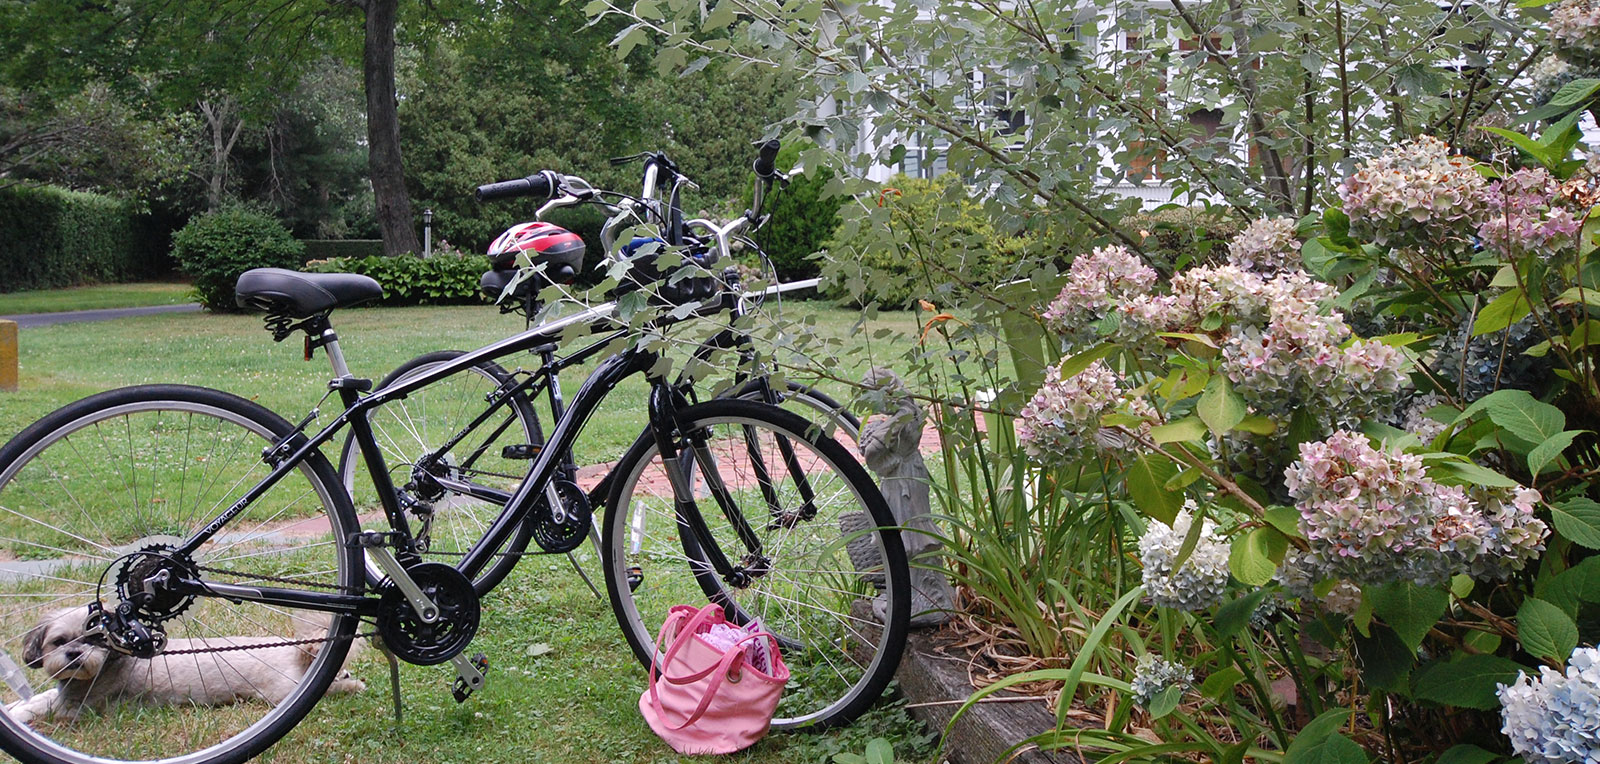 2 Bikes and Flowers | ADMIRAL SIMS B&B, Newport Rhode Island